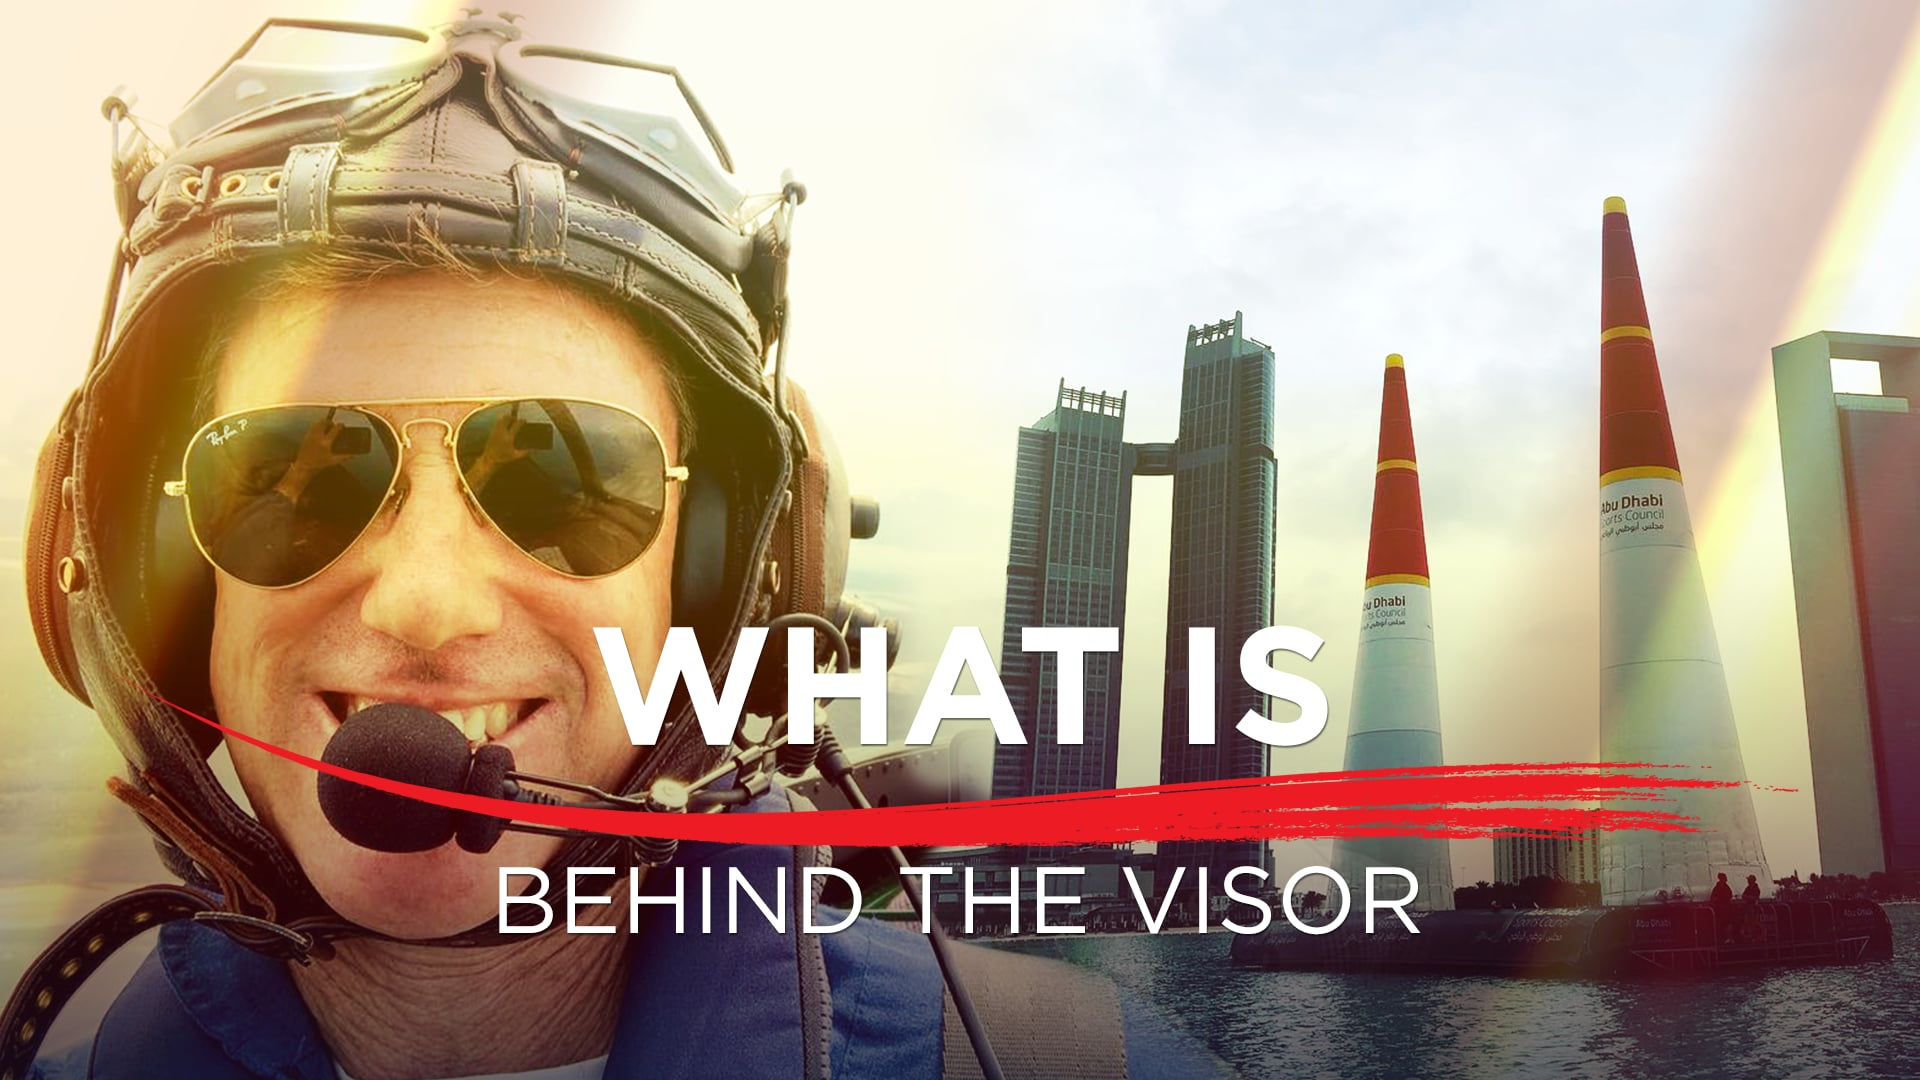 EP.00 - What Is Behind The Visor?